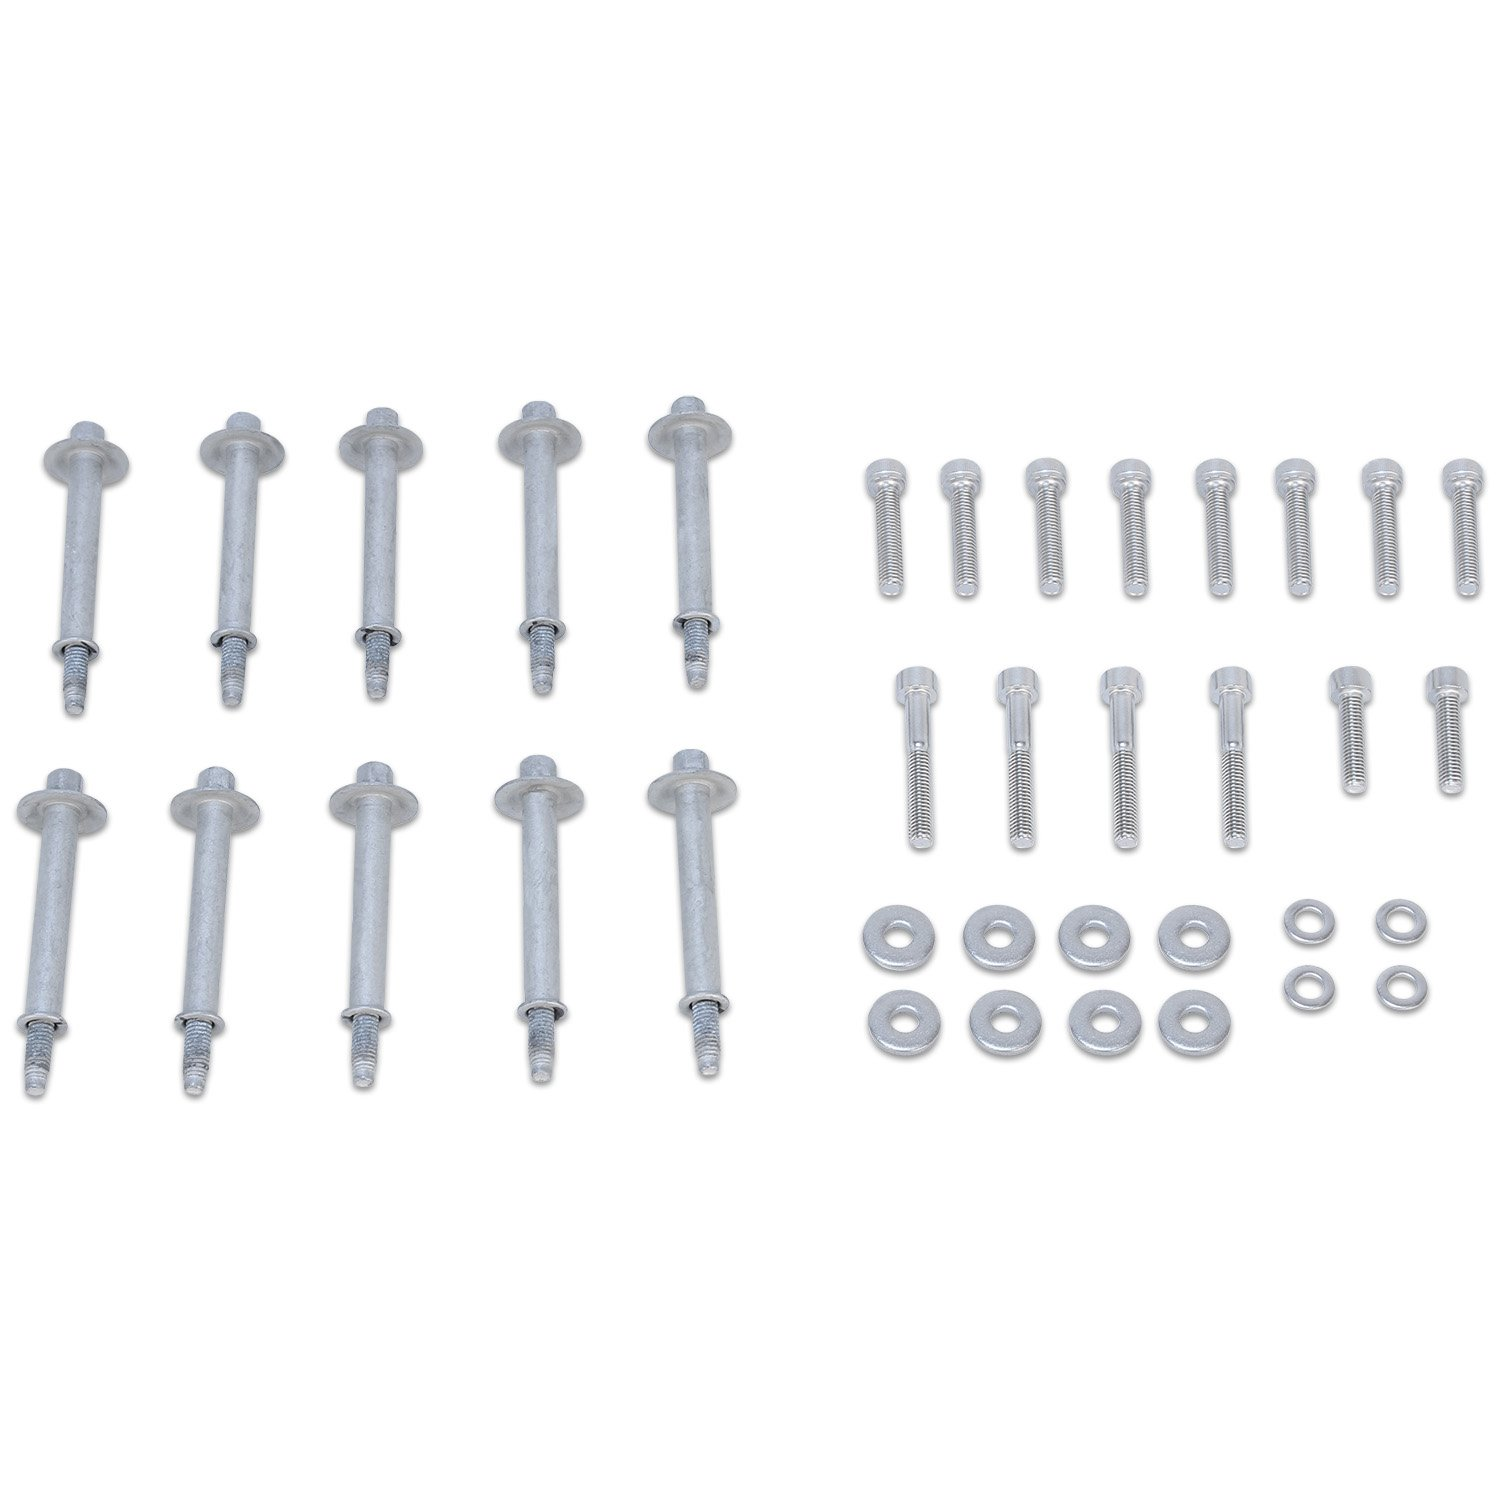 2714 - LT1 AirForce Fastener Kit for PN 2700 Image